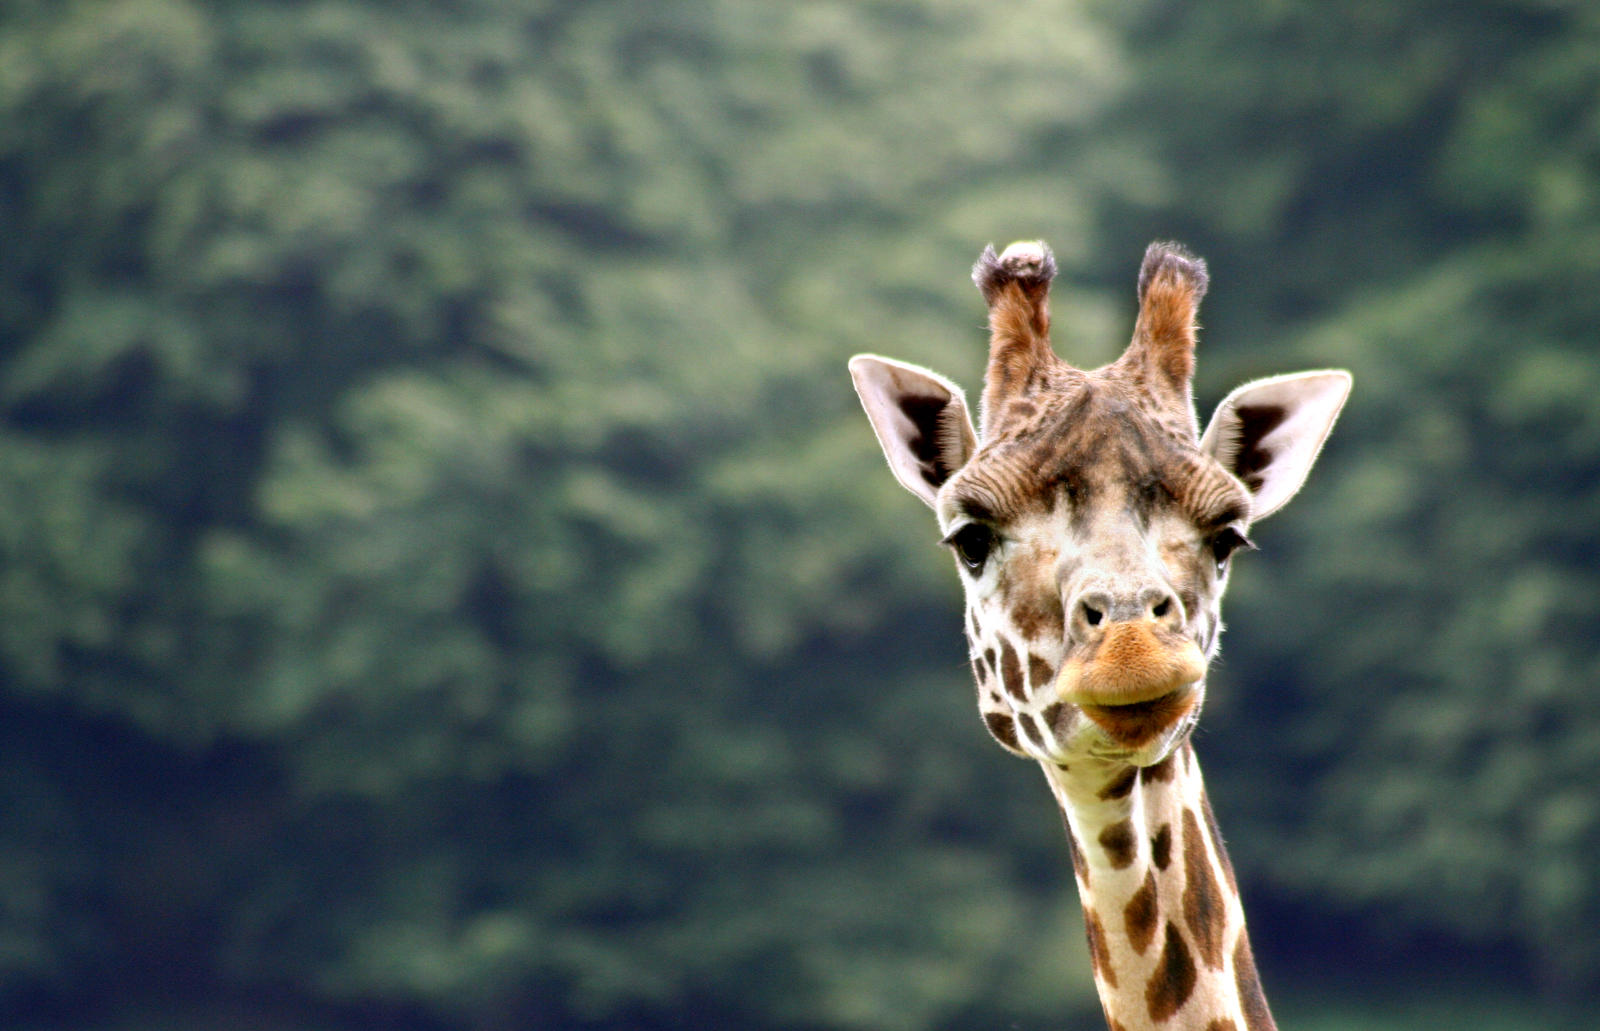 Giraffe by lewisjbirch